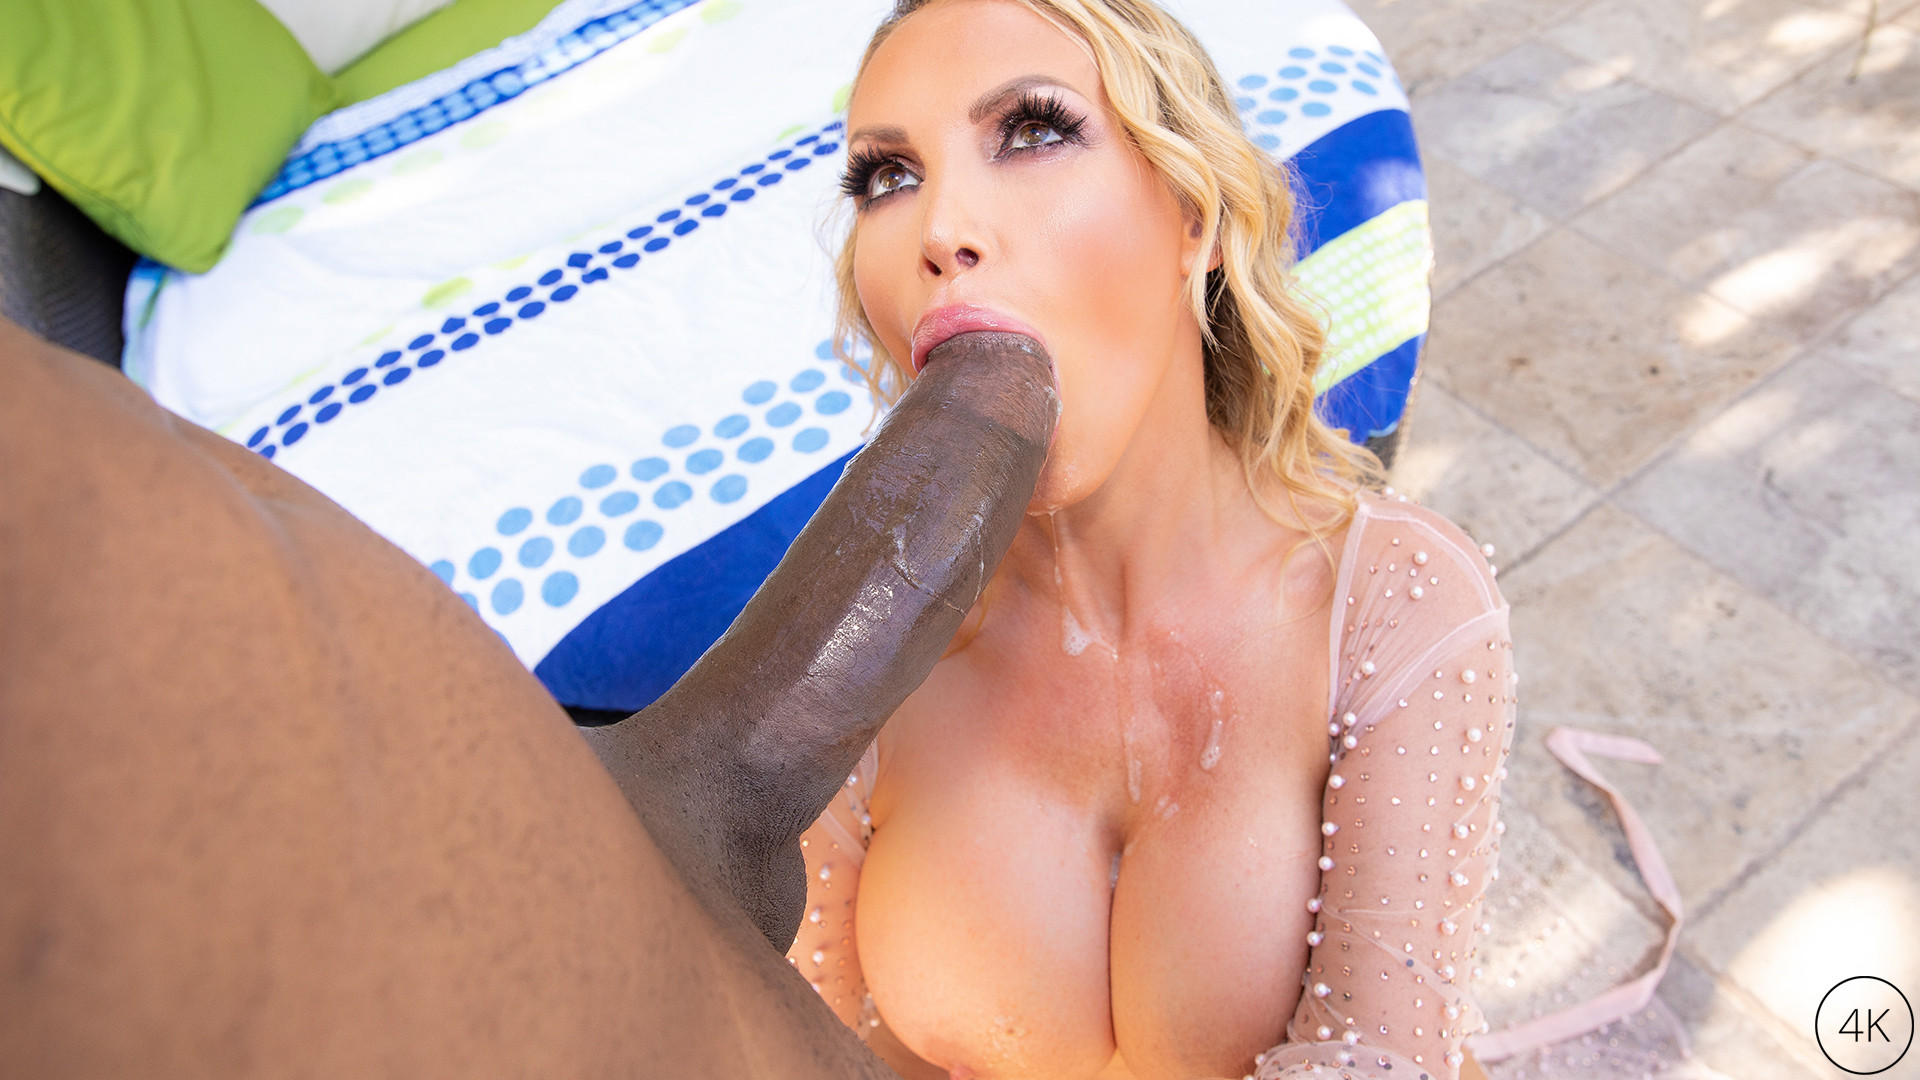 Download JulesJordan.com - Nikki Benz Gets Dredd's Giant BBC